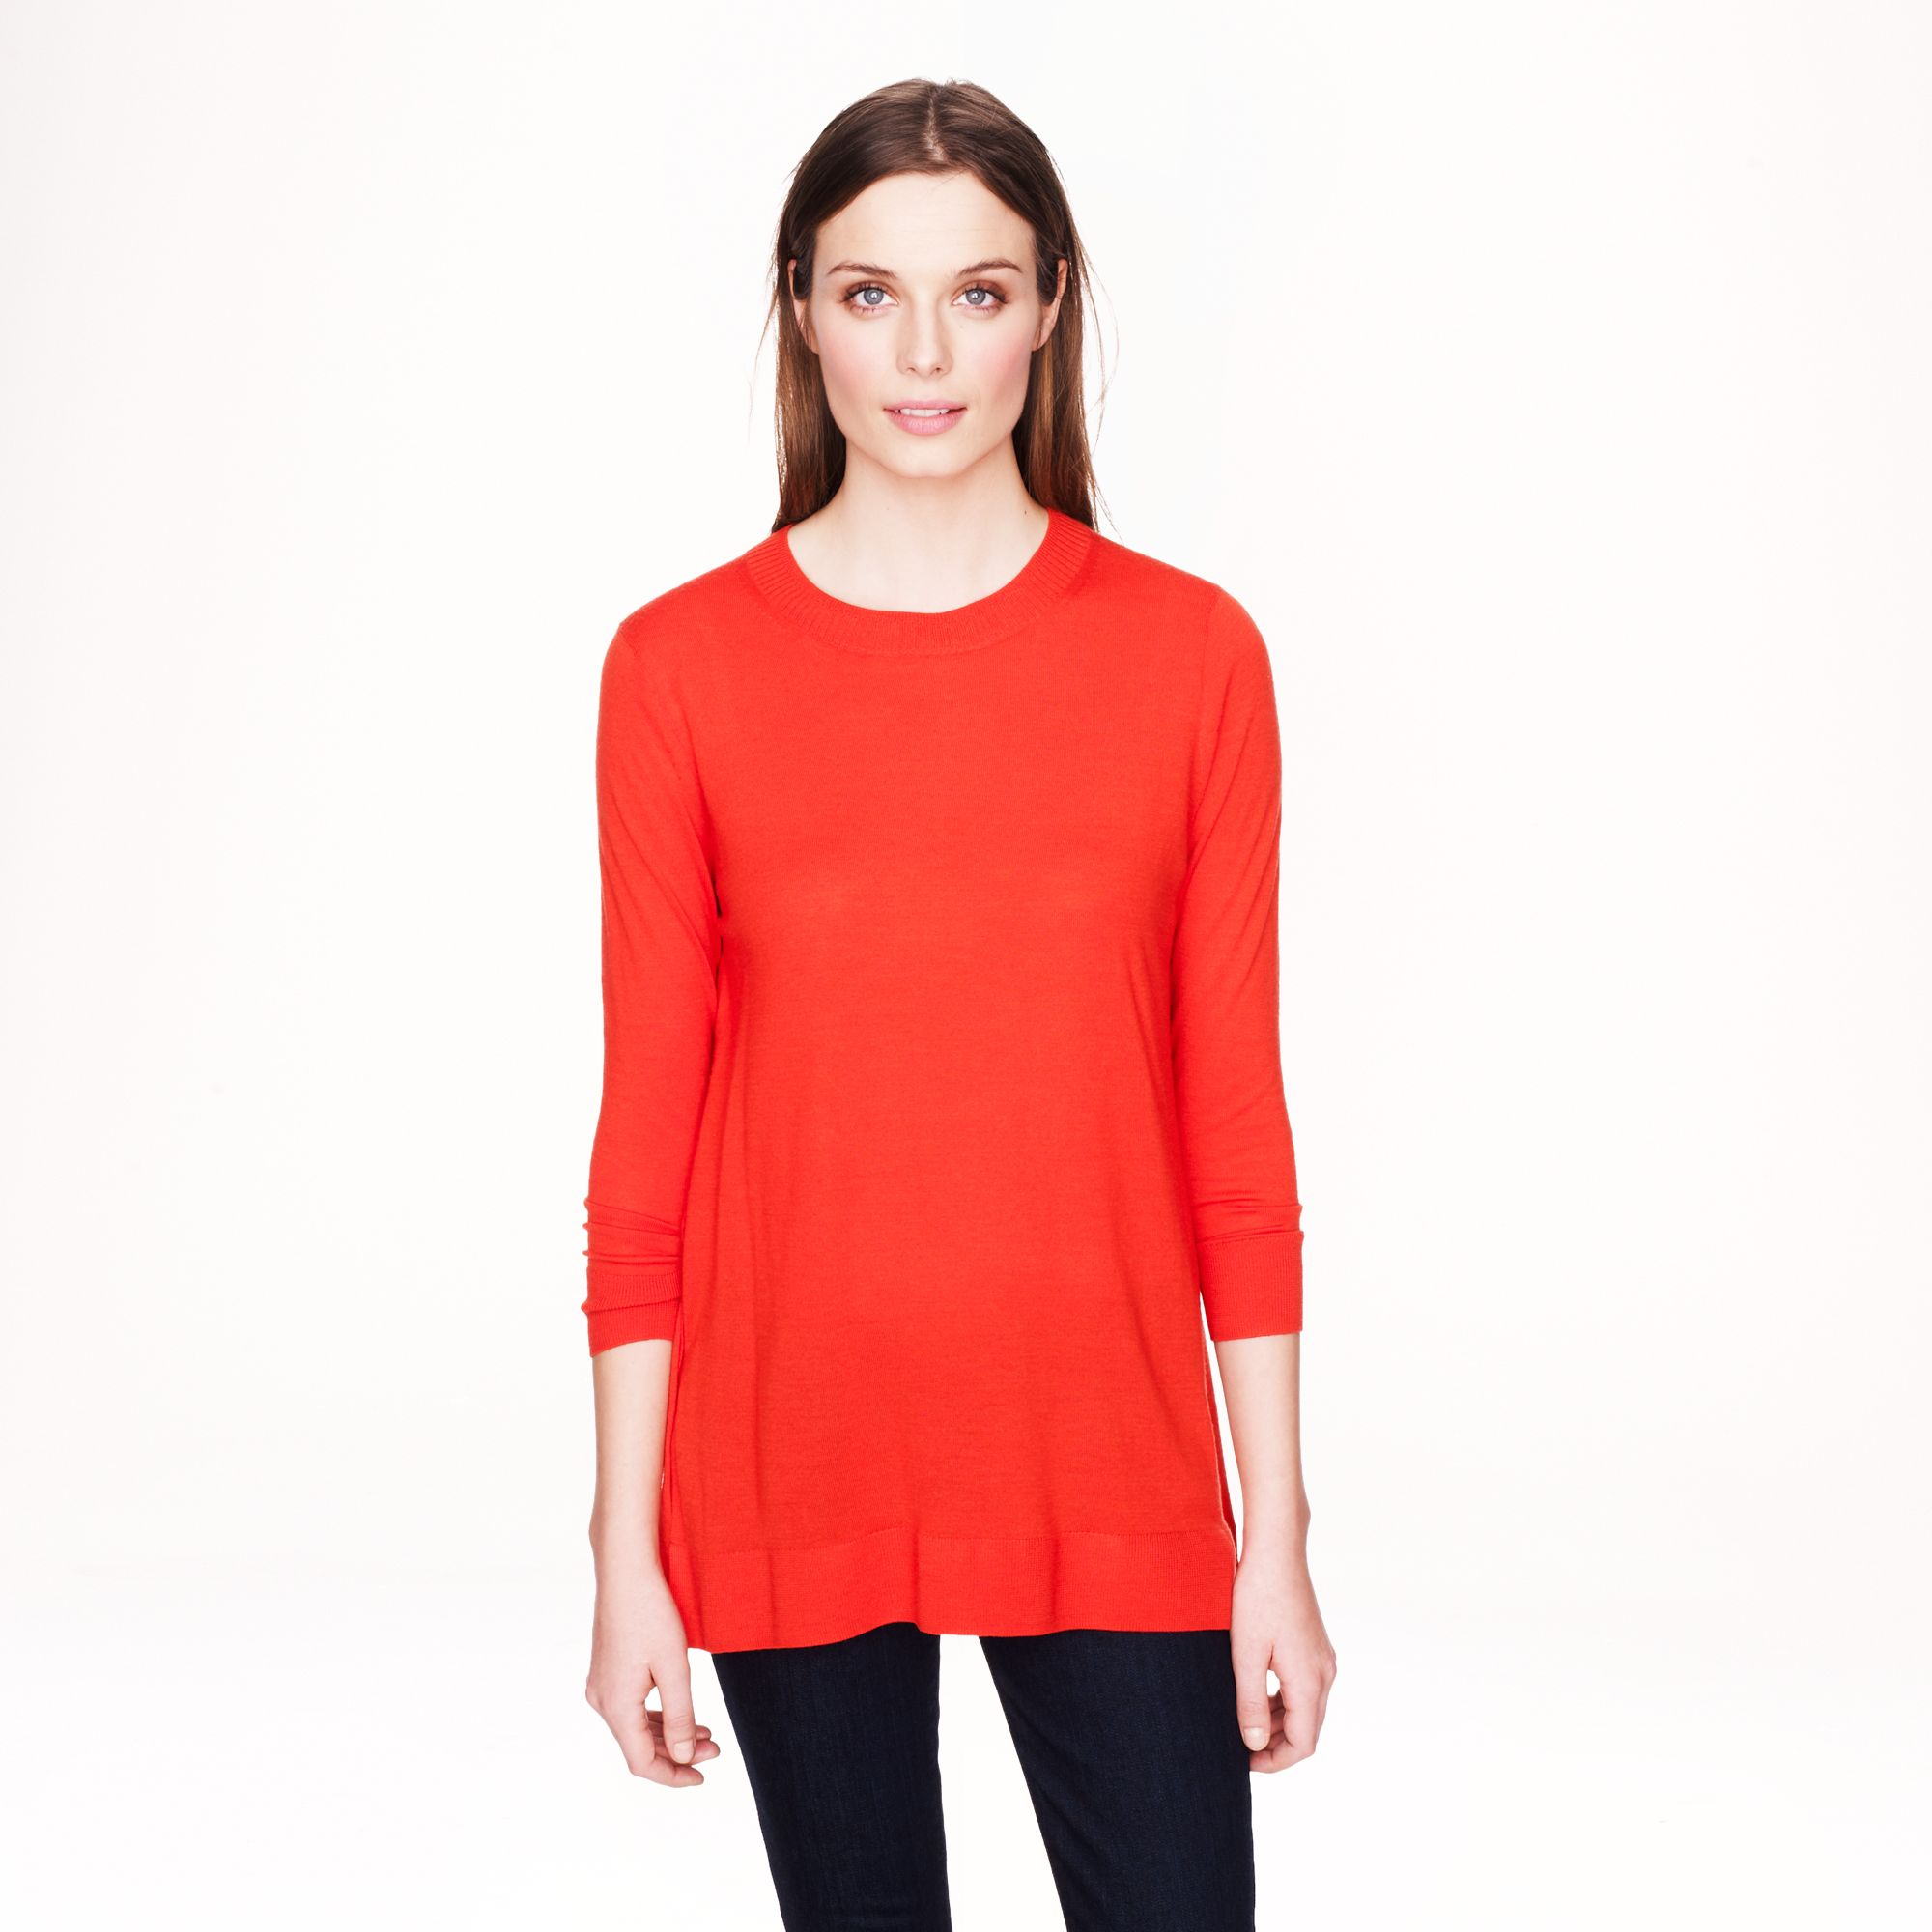 J.crew Lightweight Merino Tunic Sweater in Red | Lyst